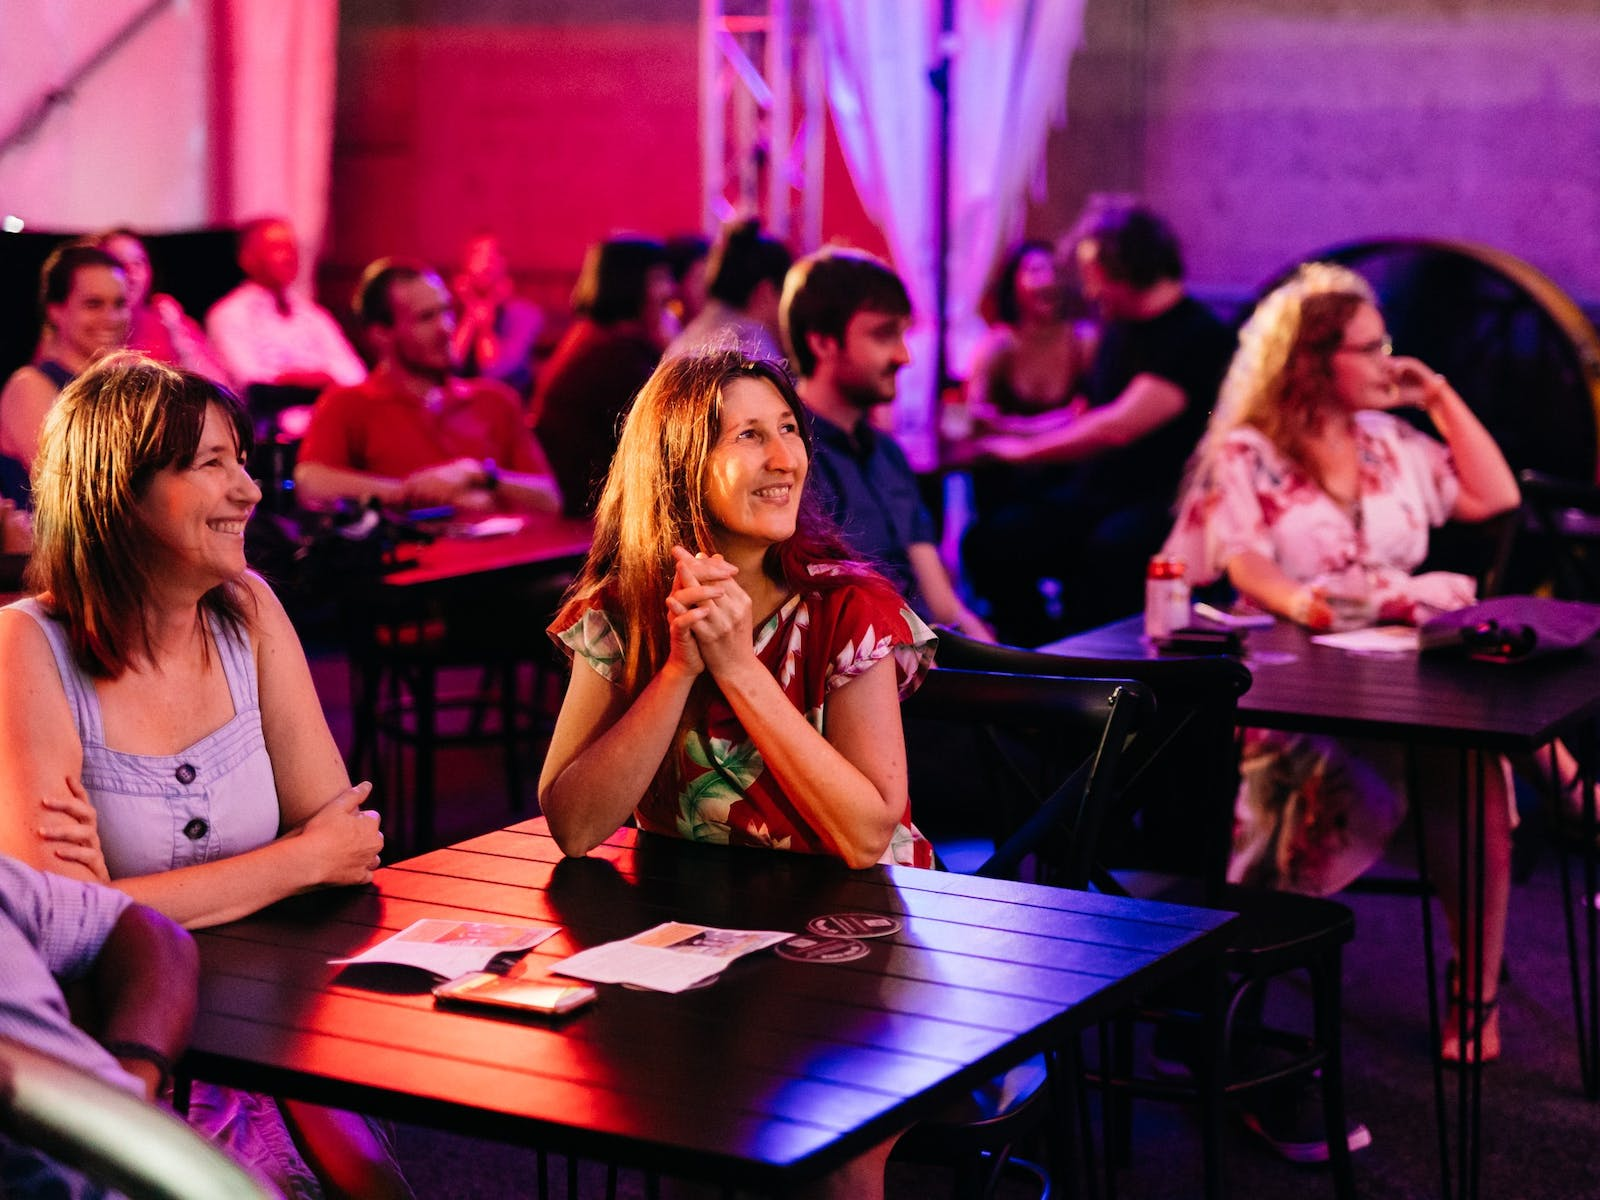 Trivia night at the museum